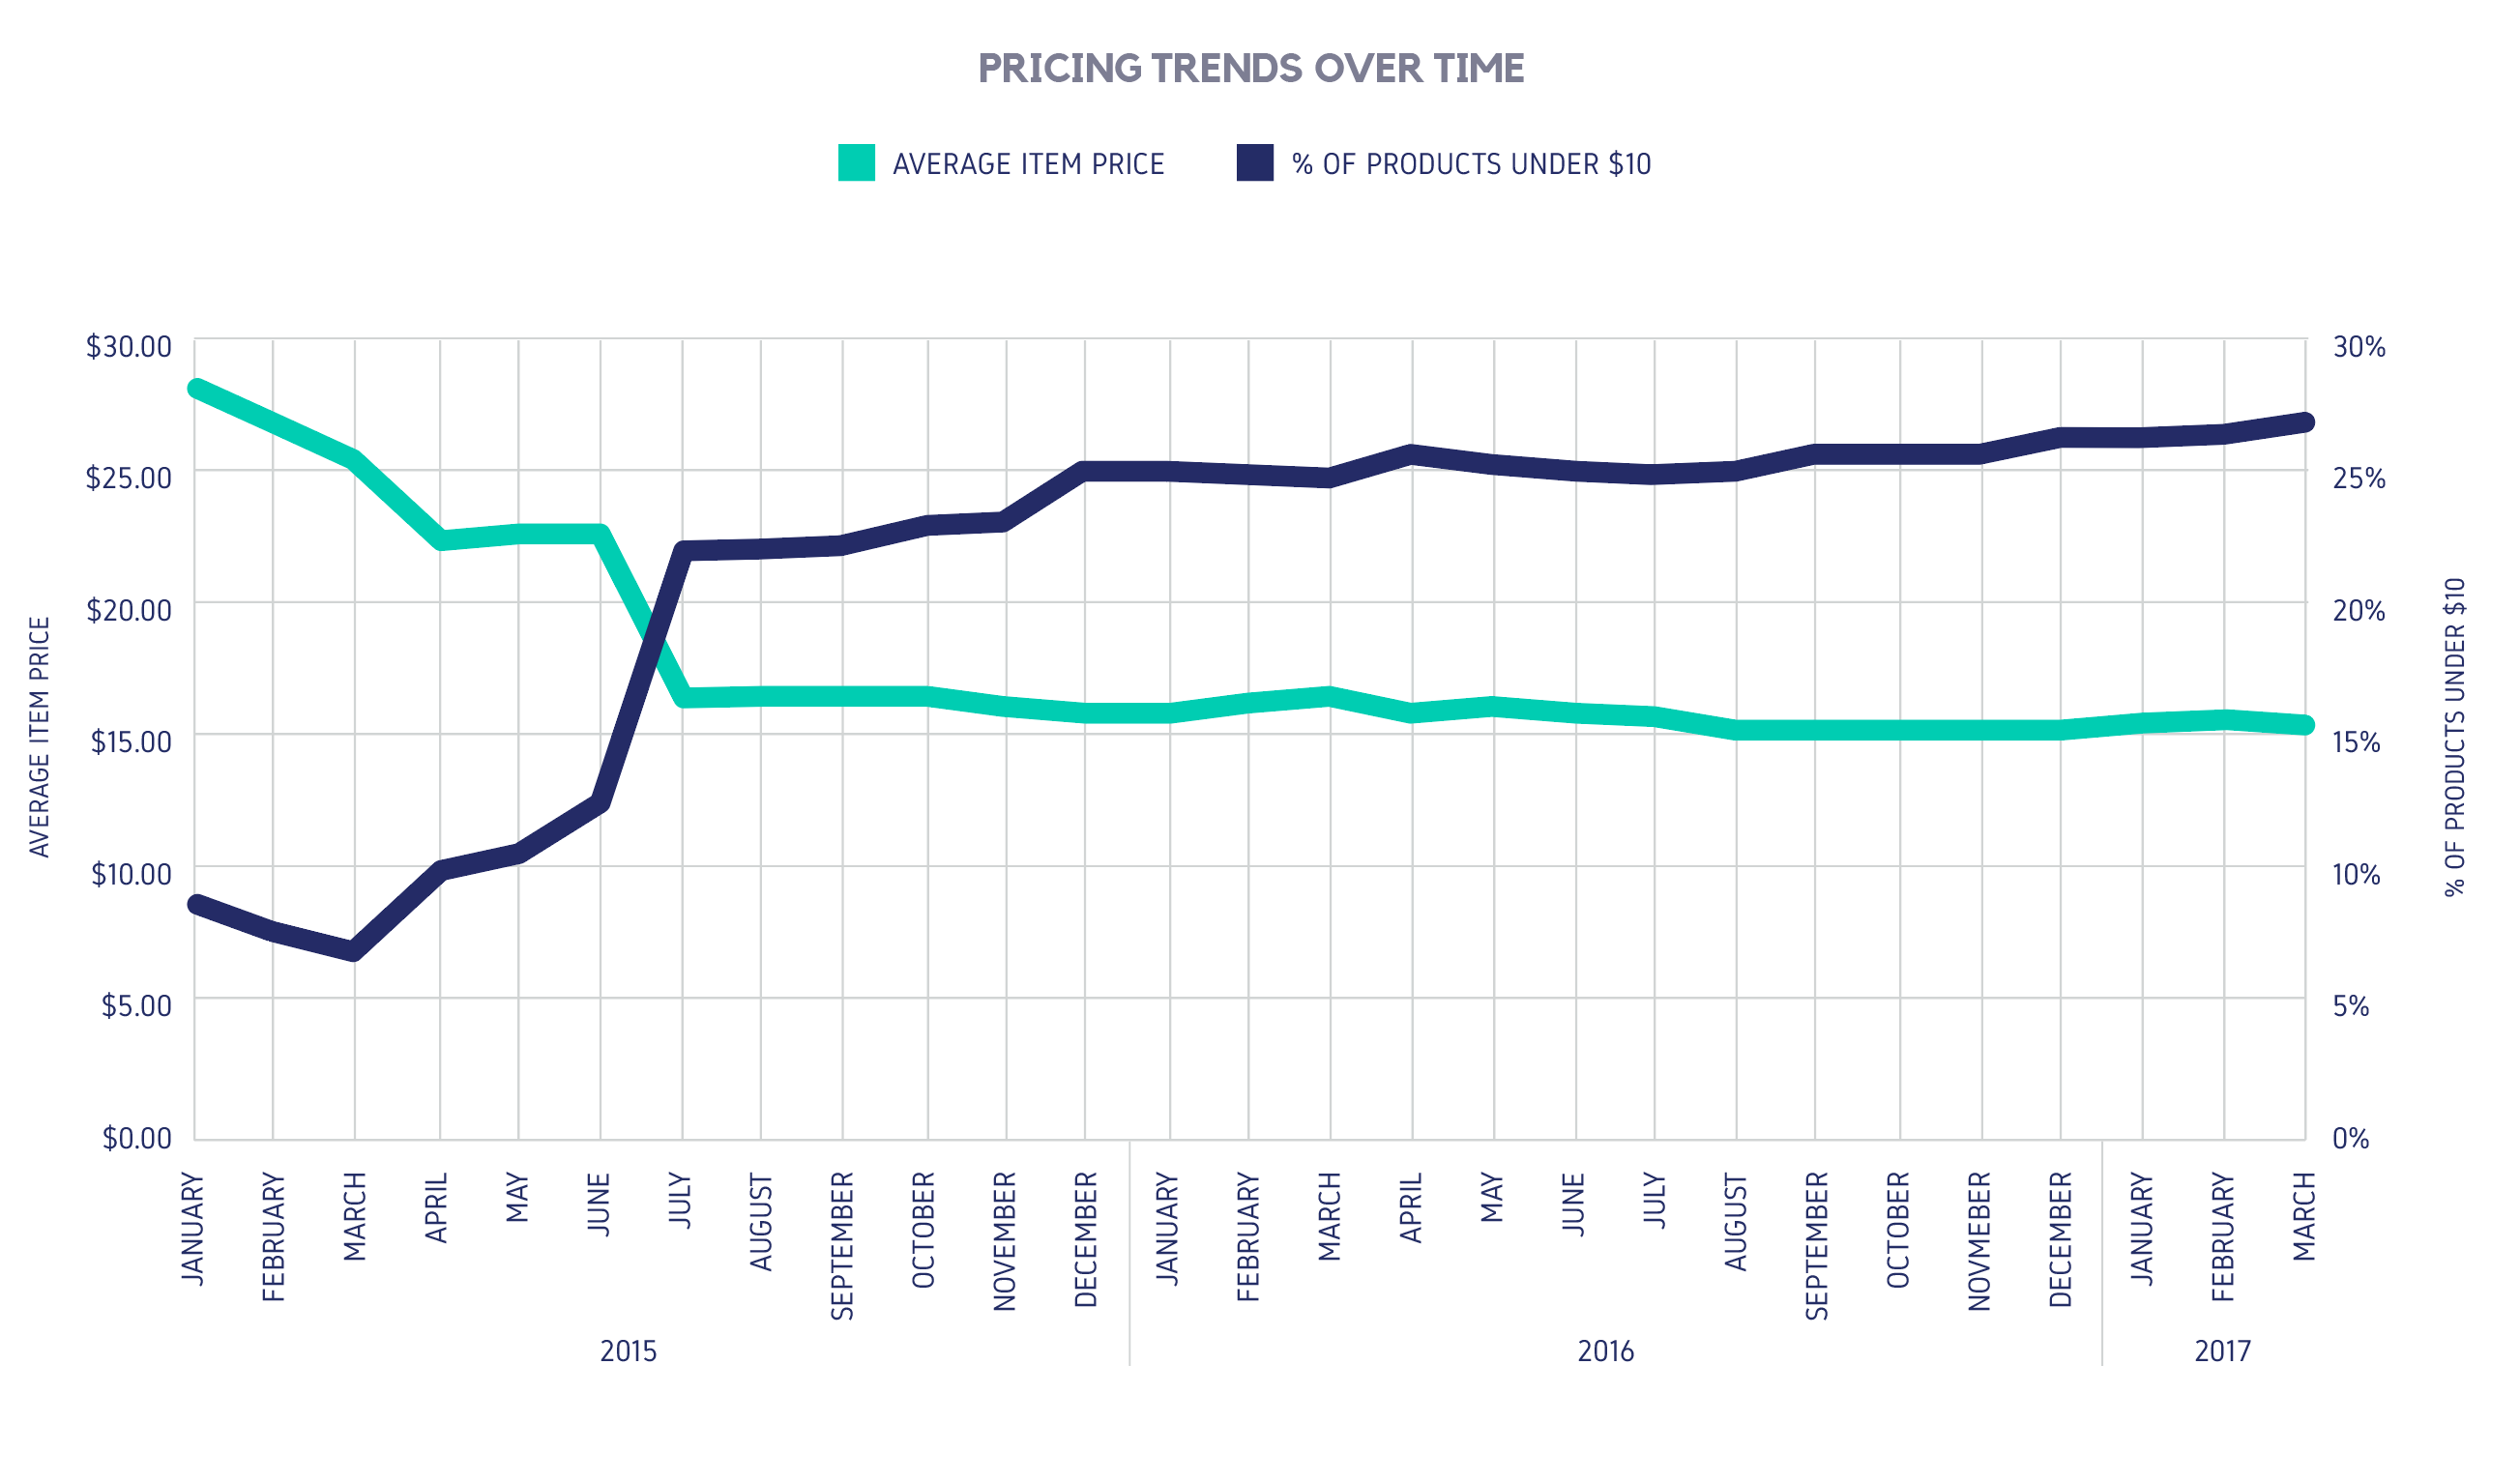 PRICING TRENDS OVER TIME